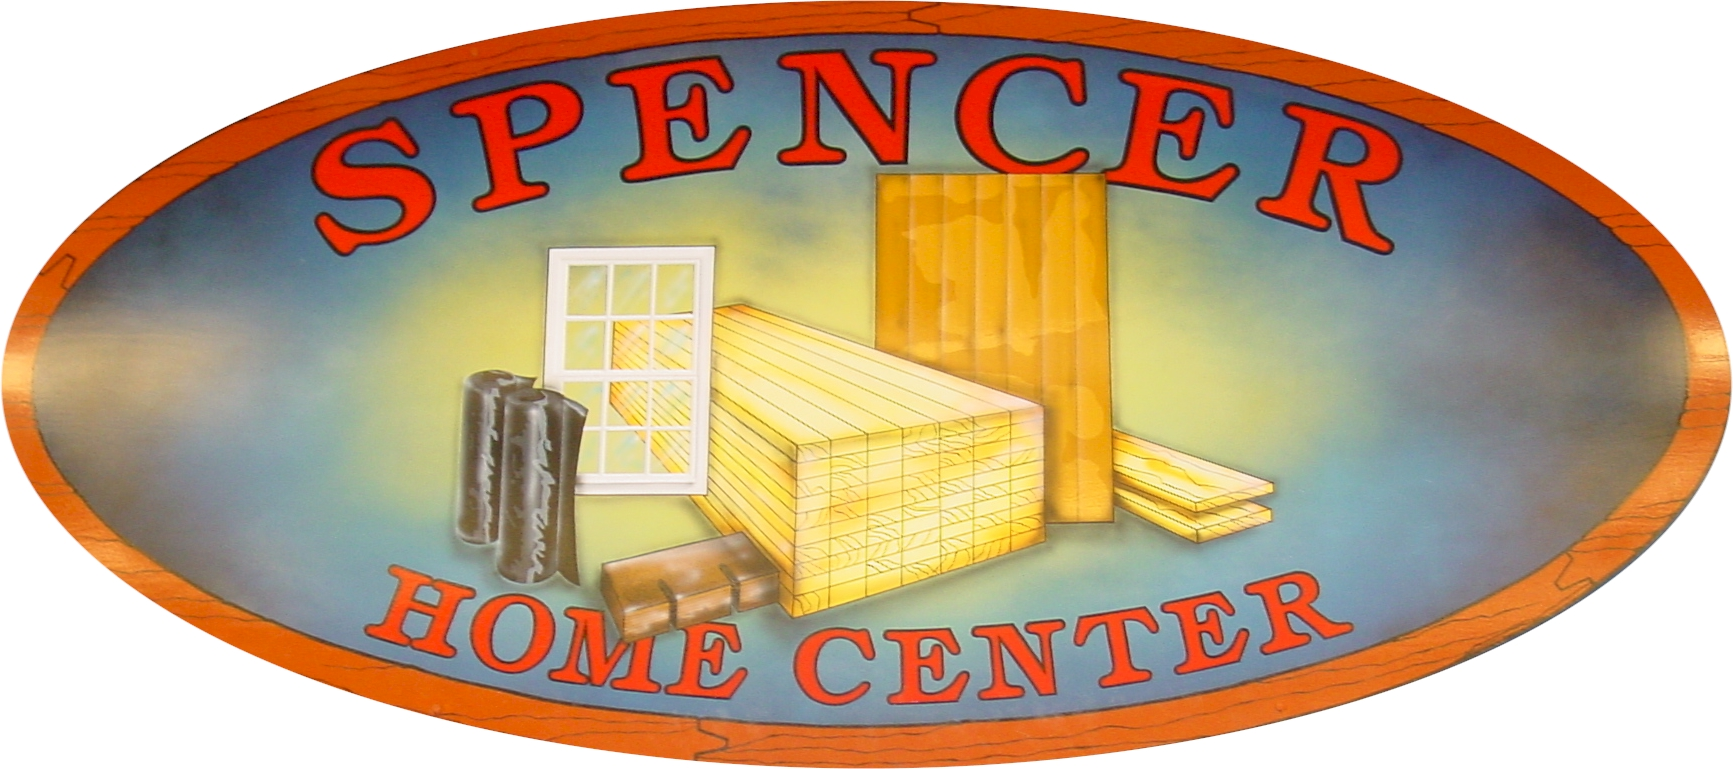 logo Spencer